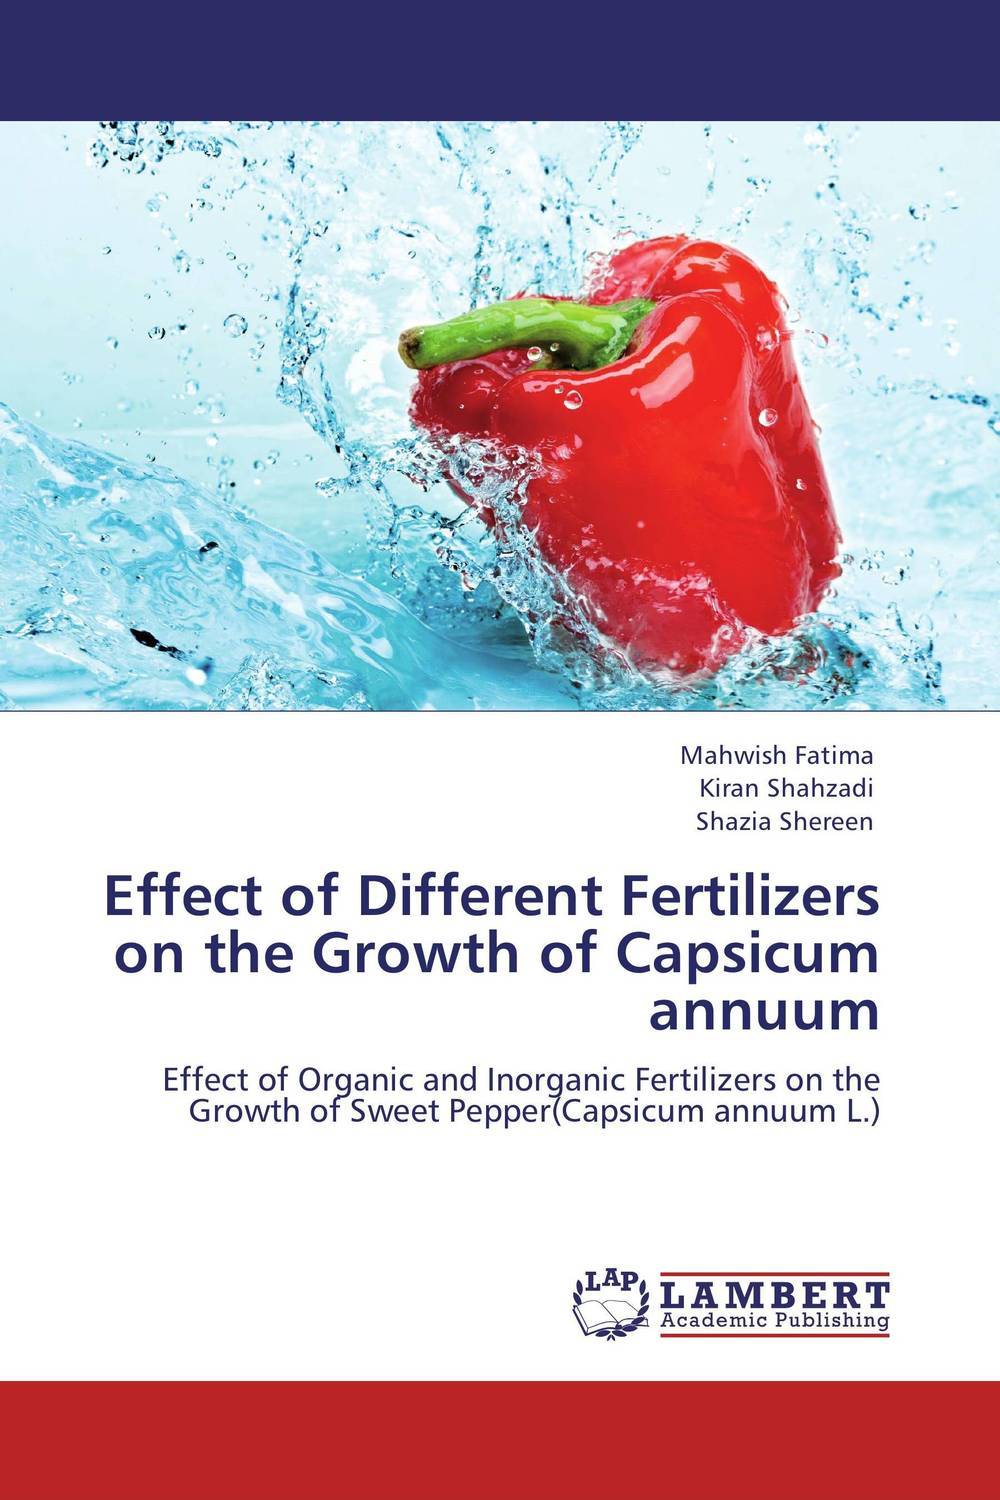 Effect of Different Fertilizers on the Growth of Capsicum annuum fifth avenue shoe repair длинное платье